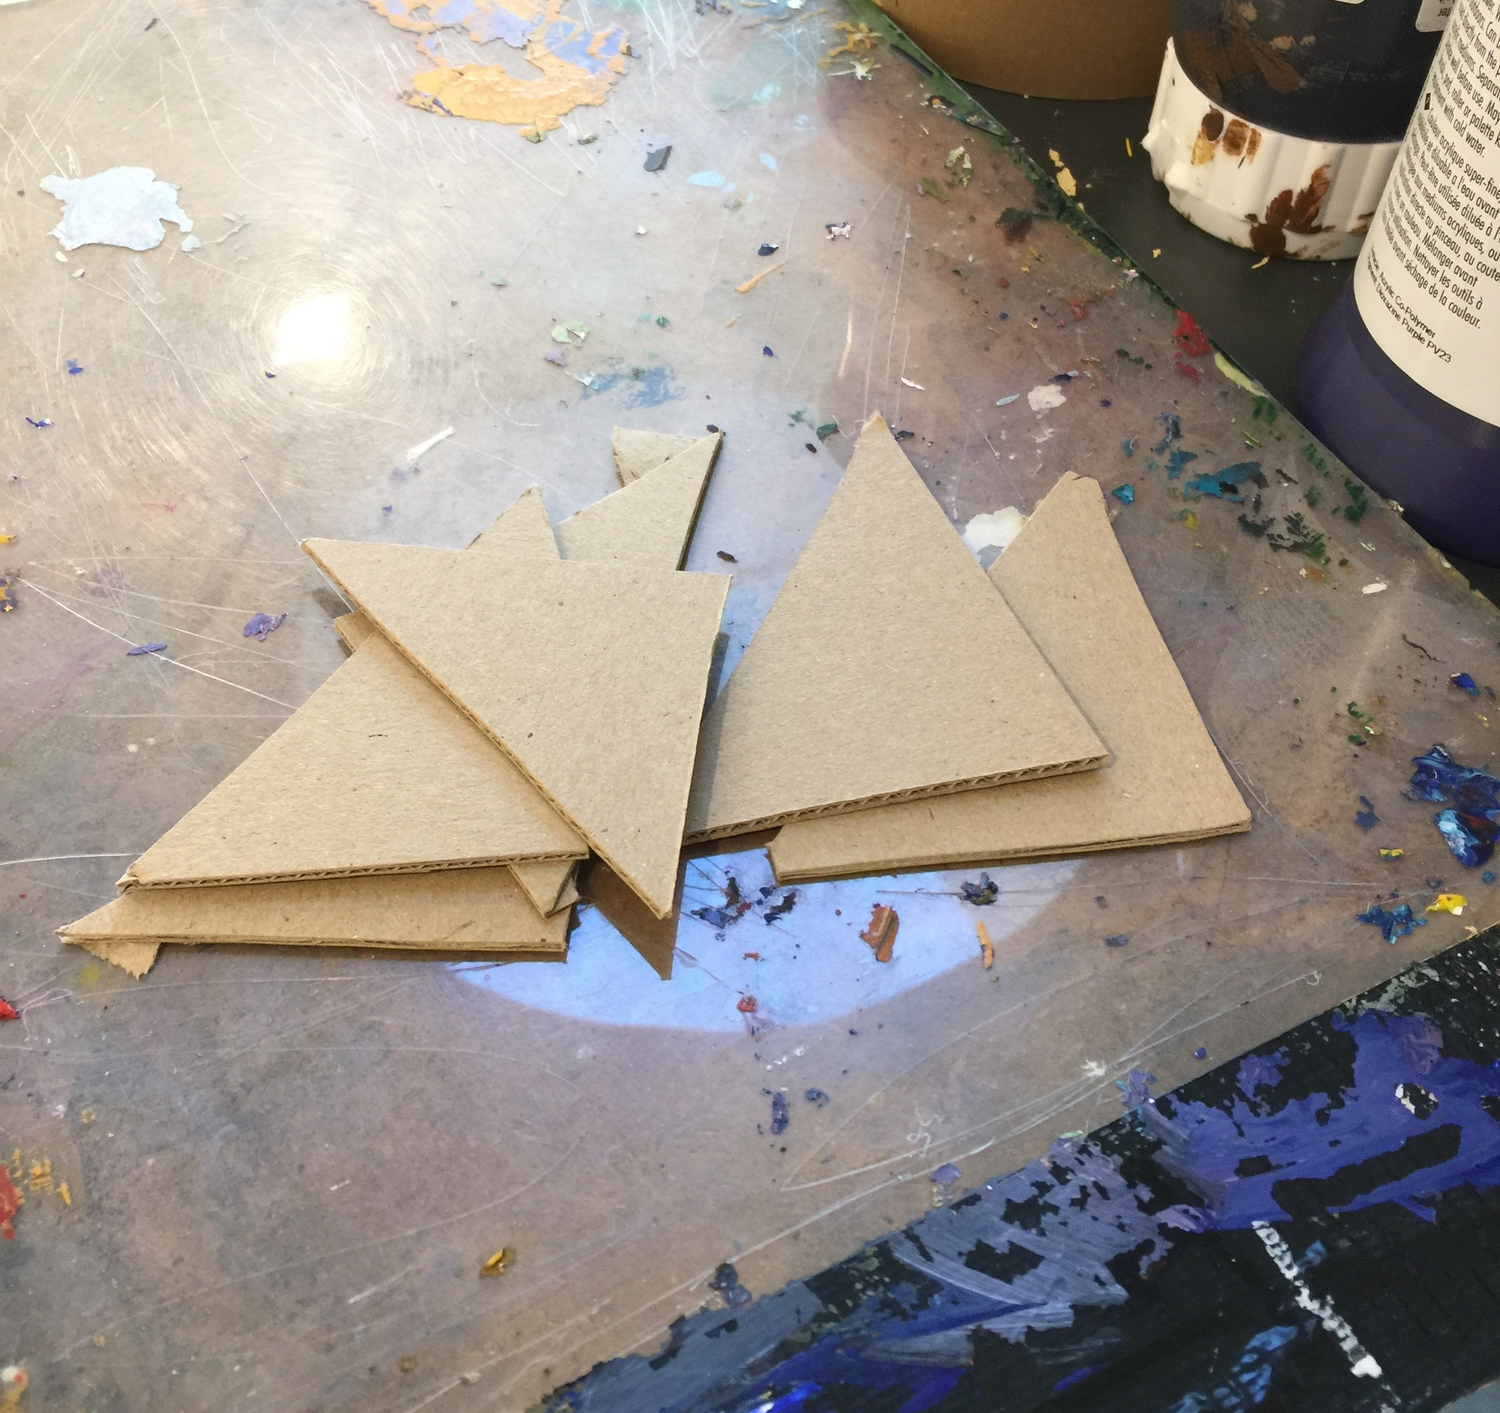 Cardboard wedges used to scrape paint on in block sections